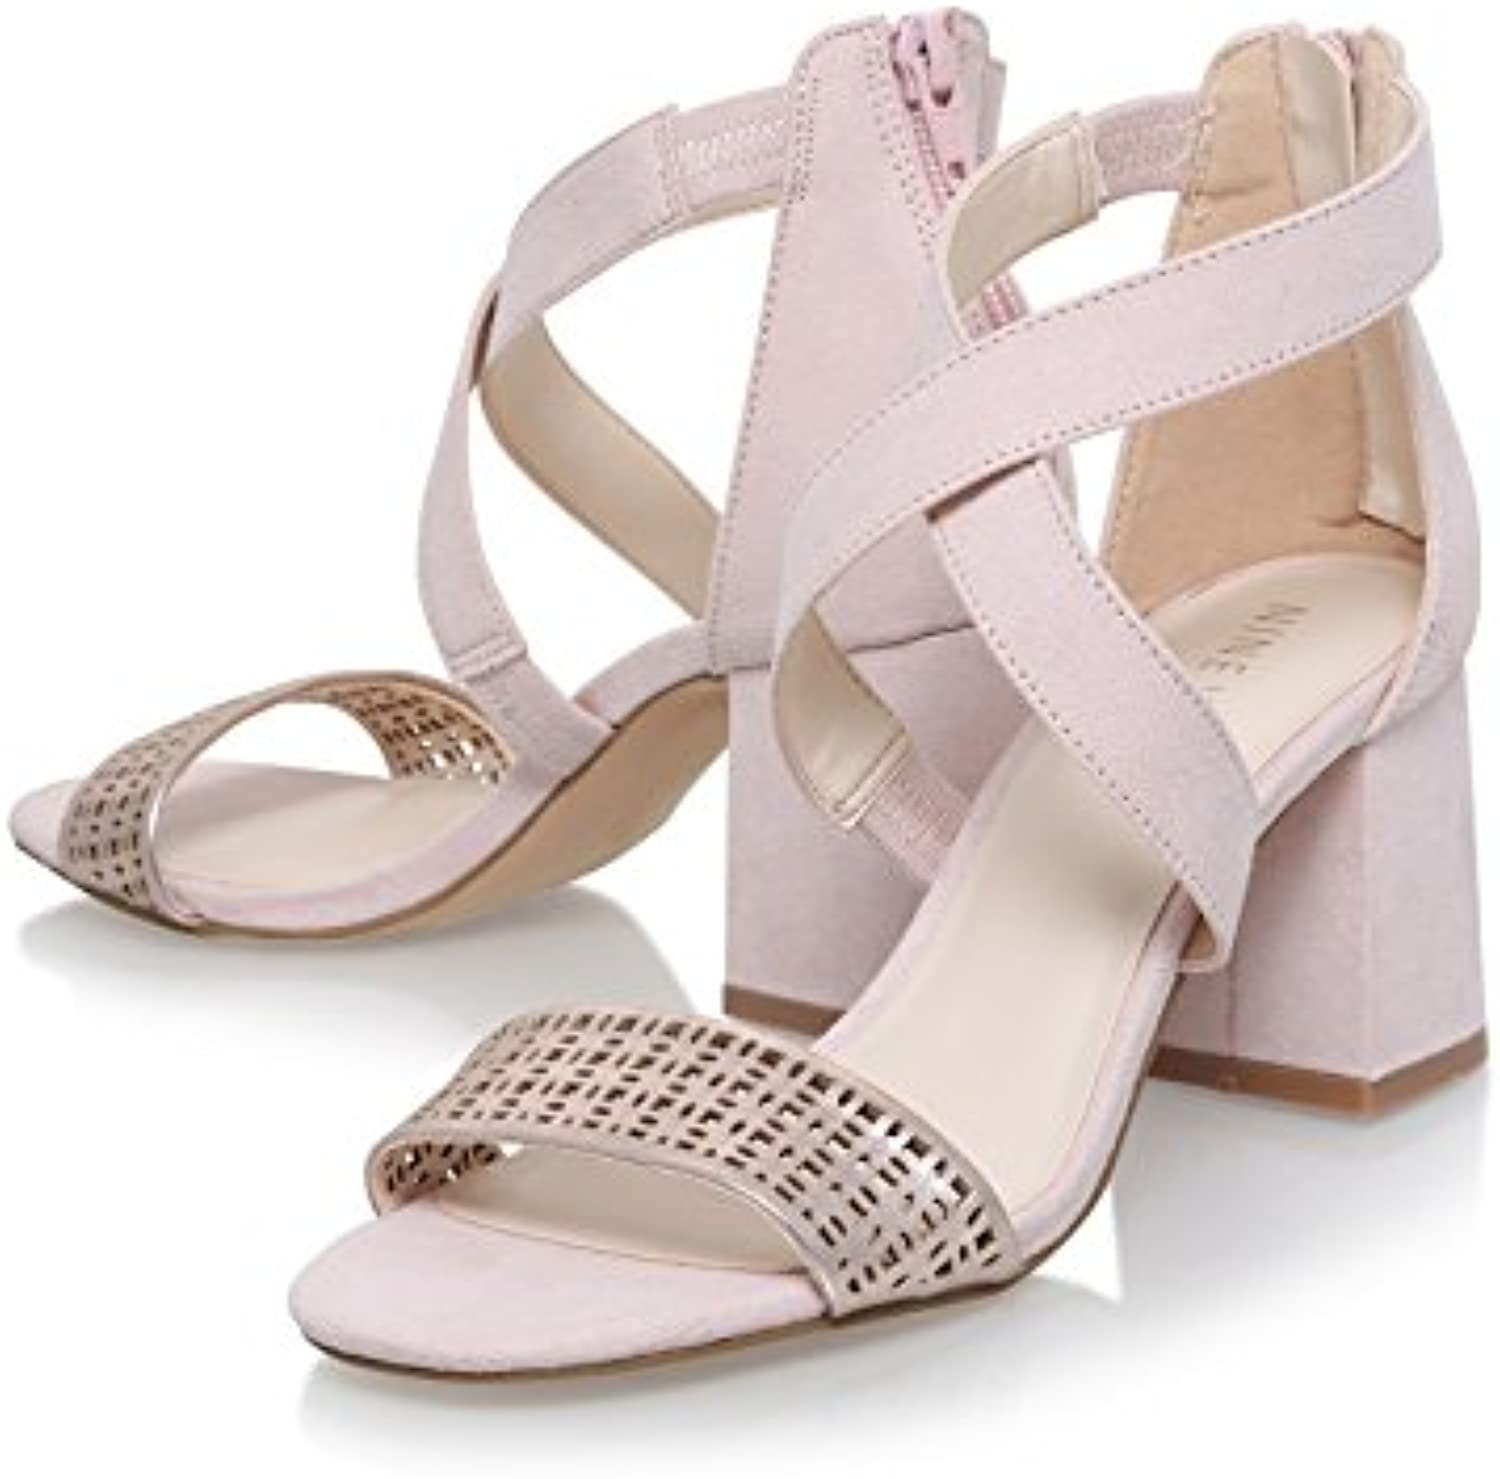 nine west lustre Rose  hauts hauts hauts sandales b07drm5zfw parent | Des Performances Fiables